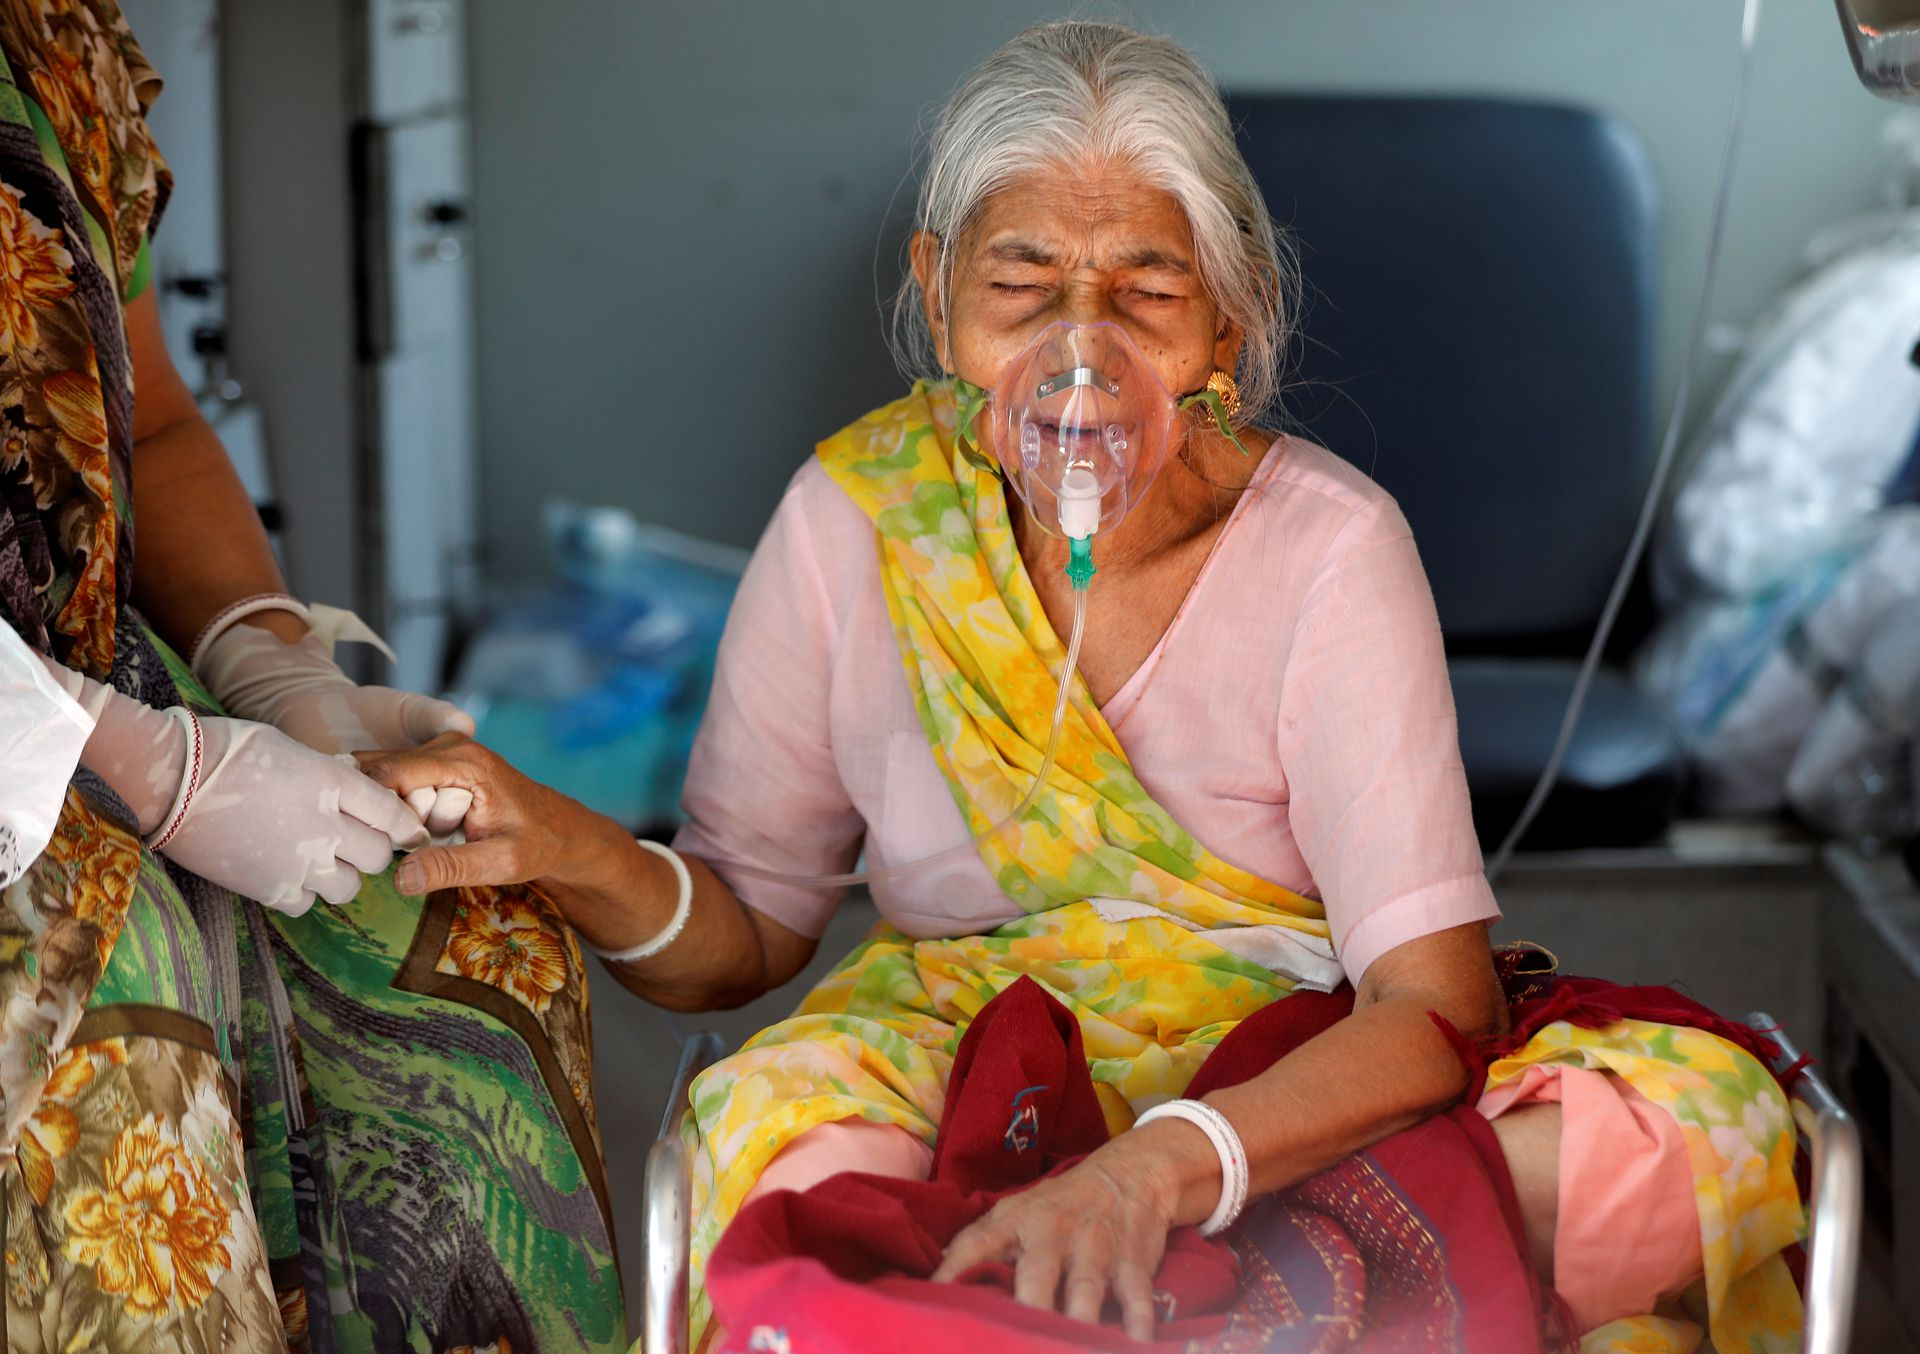 Lilaben Gautambhai Modi, 80, wearing an oxygen mask, sits inside an ambulance as she waits to enter a COVID-19 hospital for treatment, amidst the spread of the coronavirus disease (COVID-19), in Ahmedabad, India, May 5, 2021. Photo: Reuters